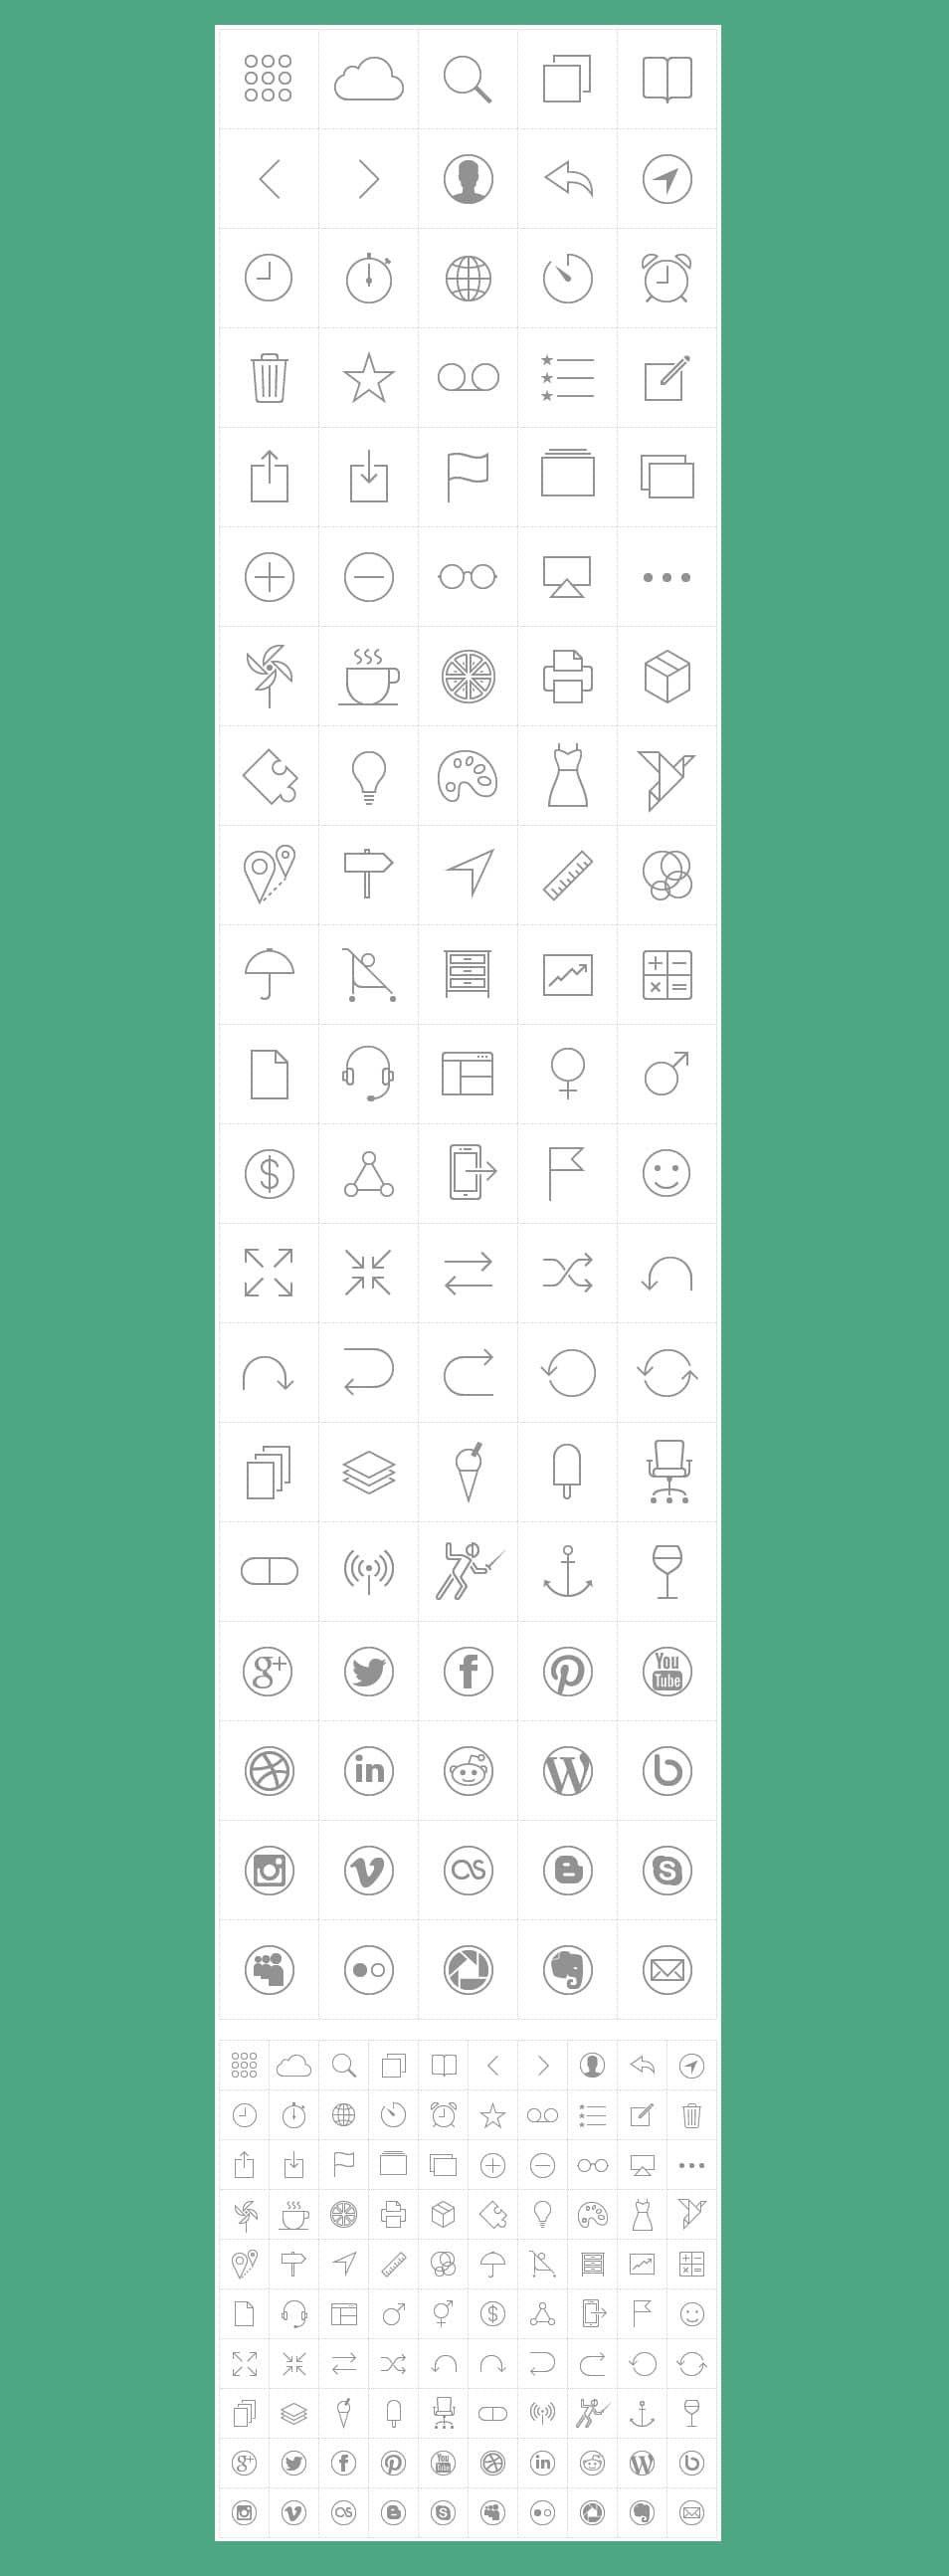 iOS 7 tab bar icons